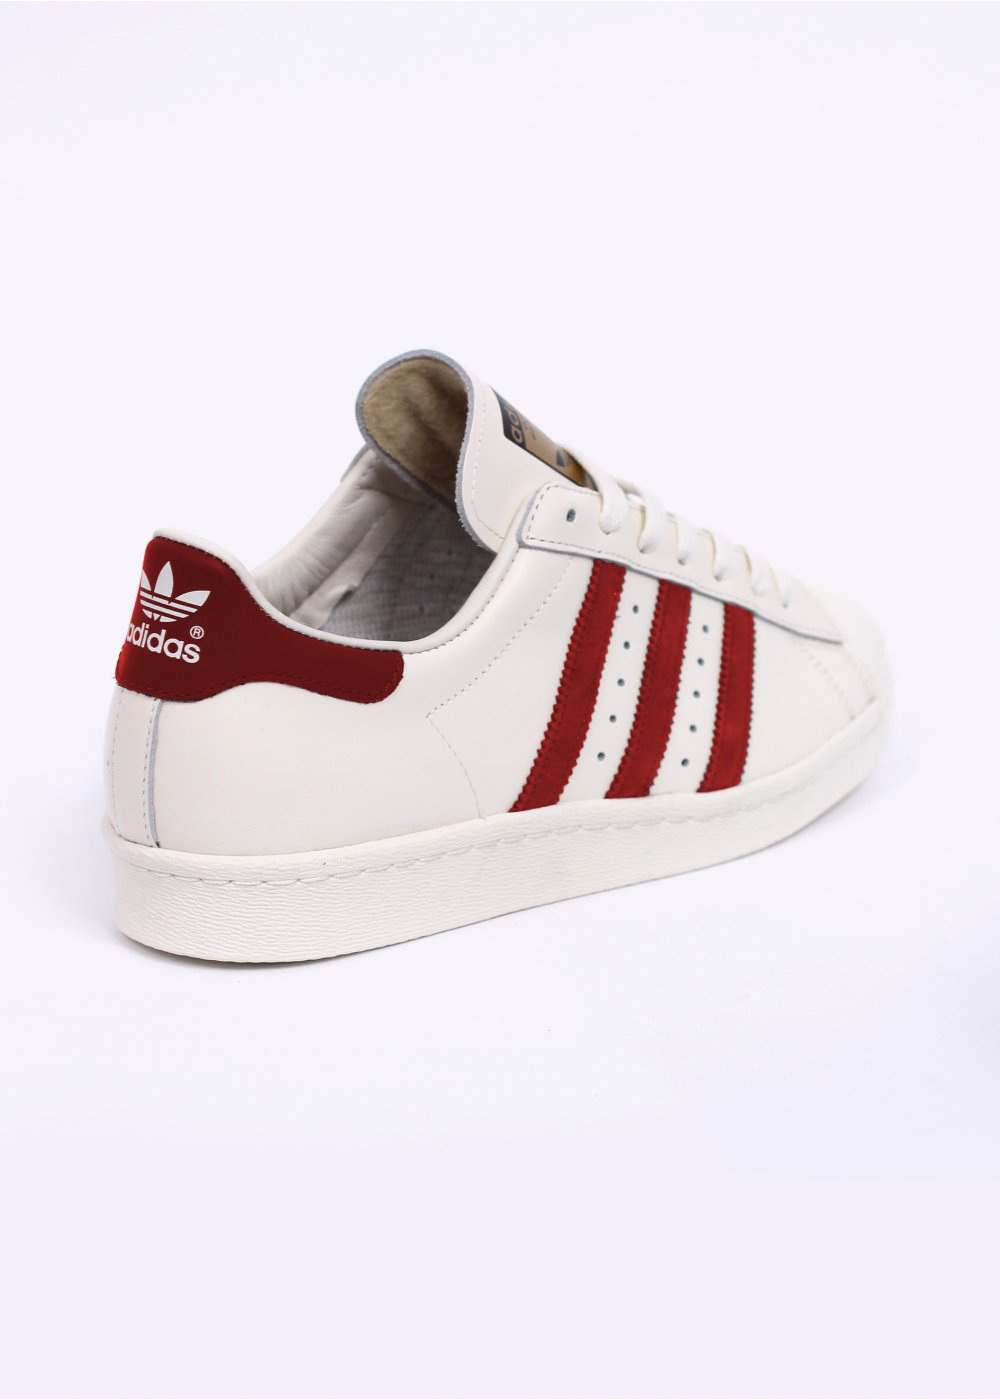 Superstar 80s Vintage Deluxe Trainers - Vintage White / Scarlet / Off White